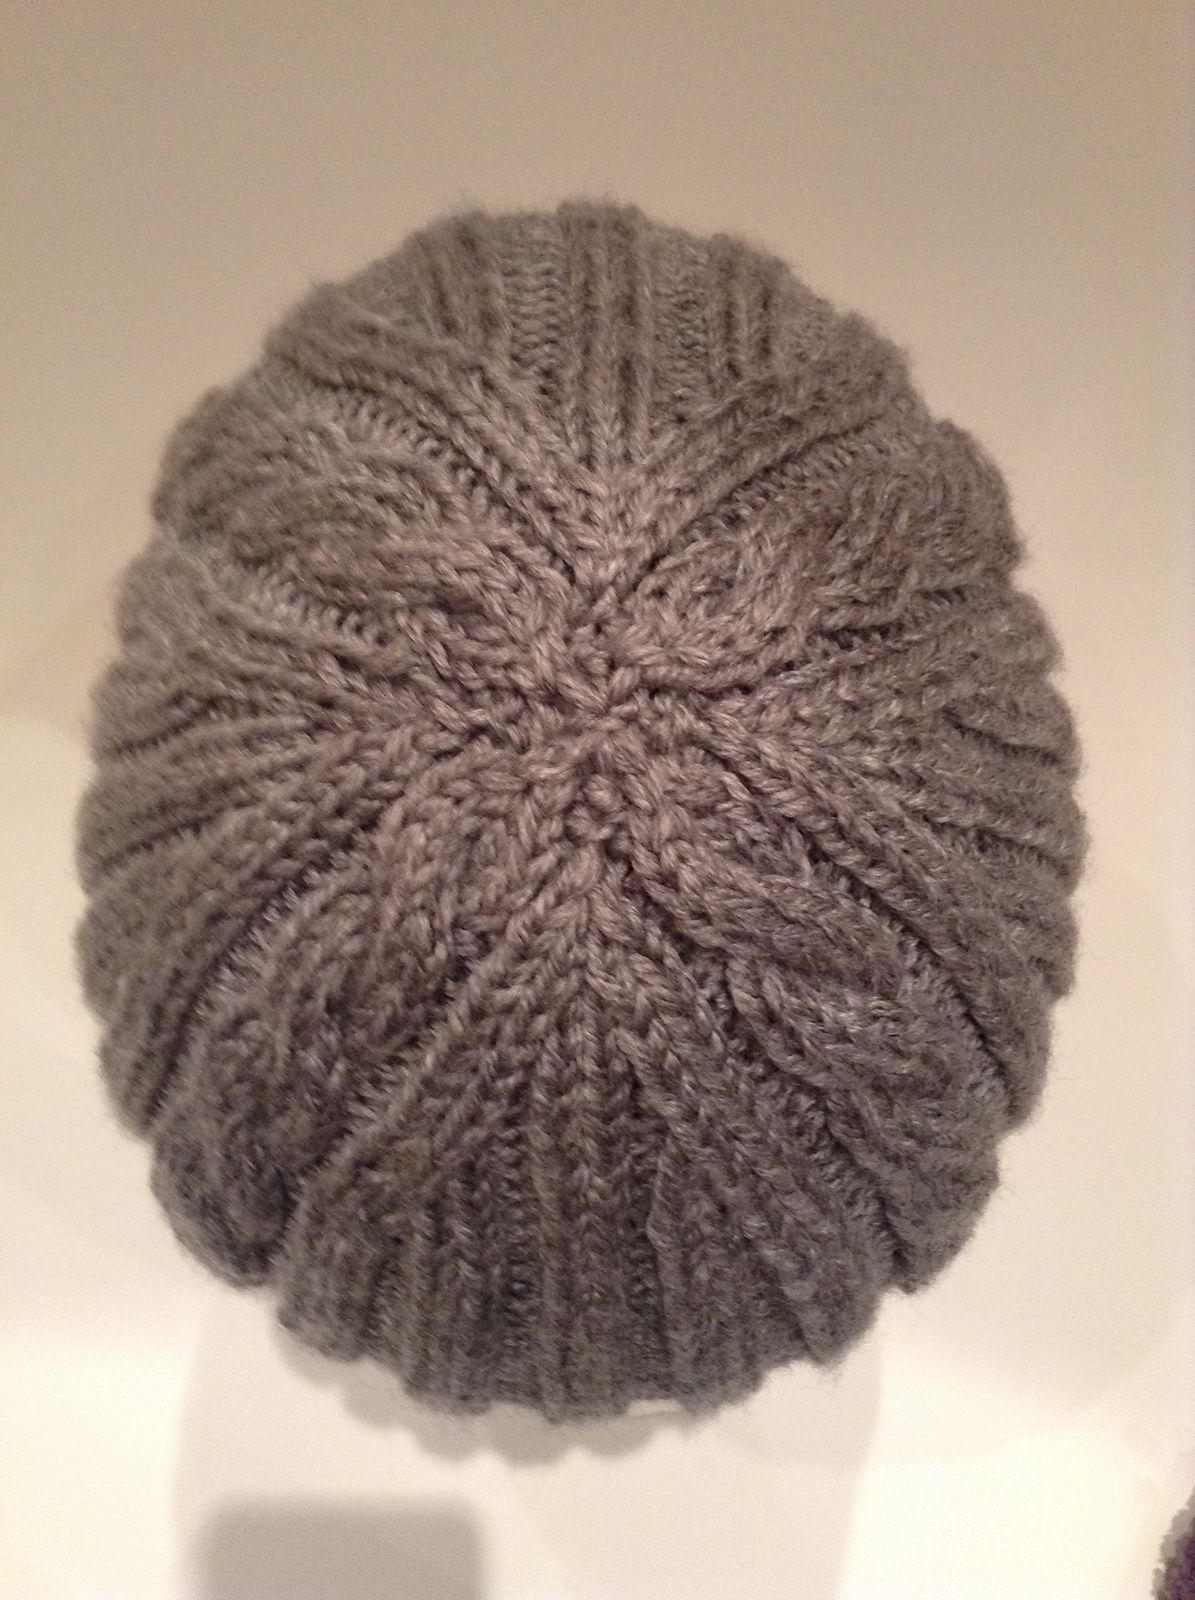 Ravelry: Ribs \'n Cables Beanie by Anne Gagnon | Вязание | Pinterest ...